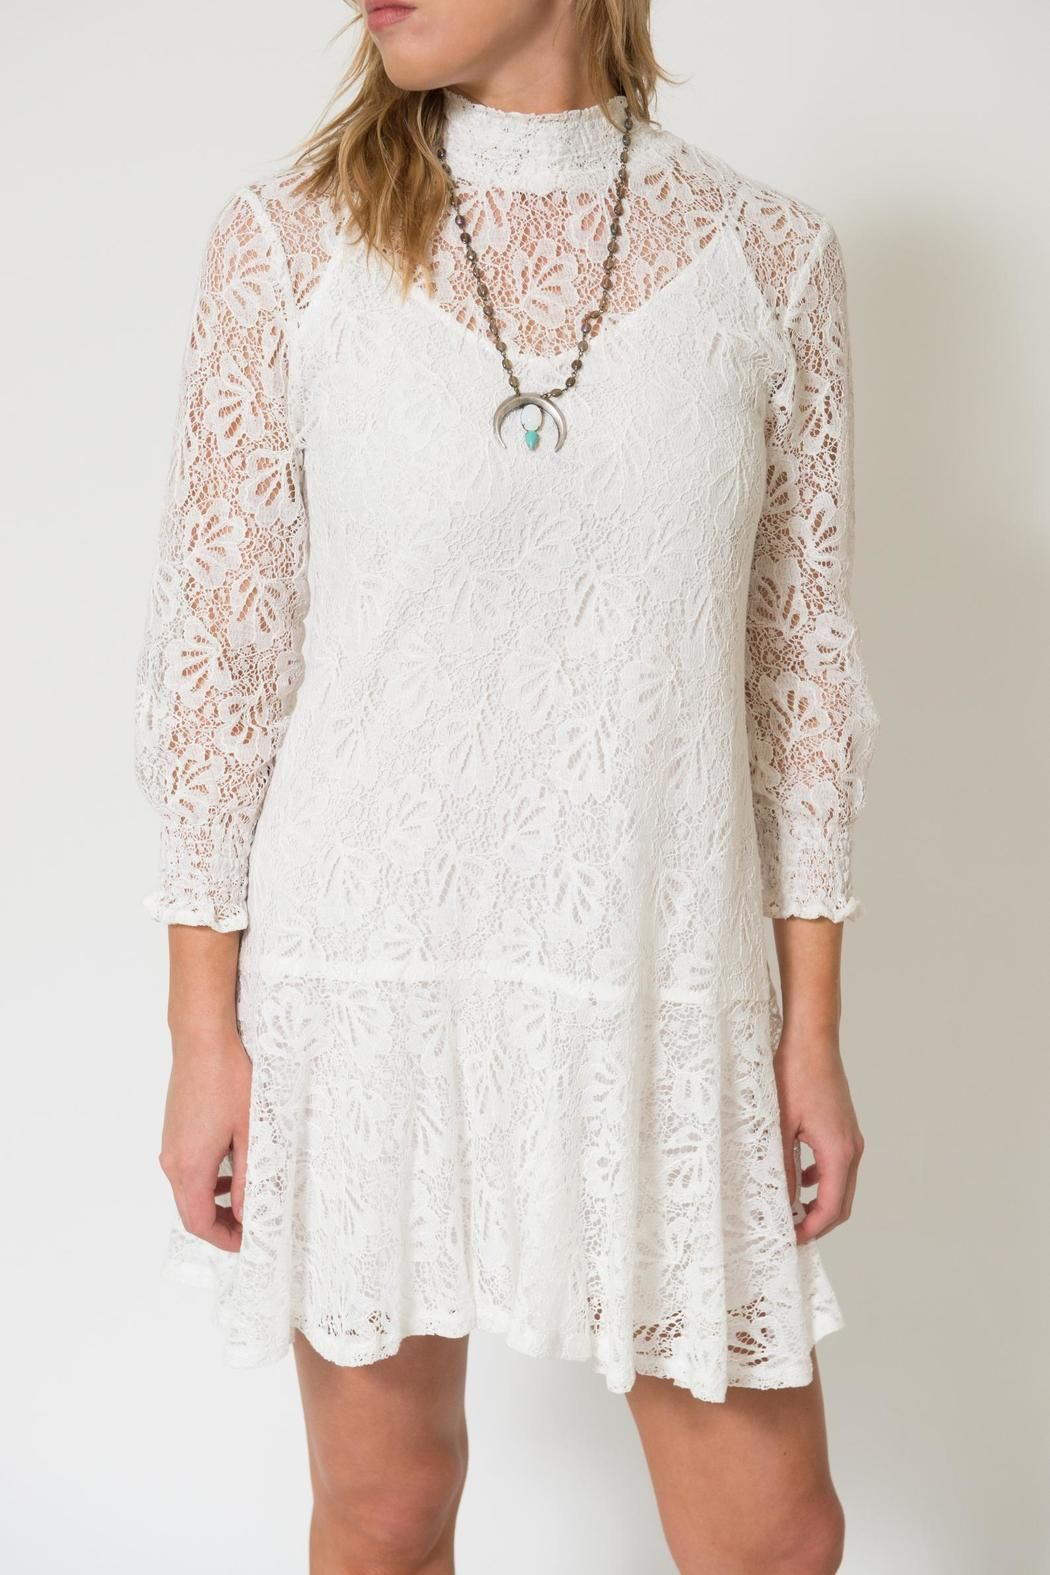 Knot sisters jojo lace dress lace overlay lace dress and dress casual